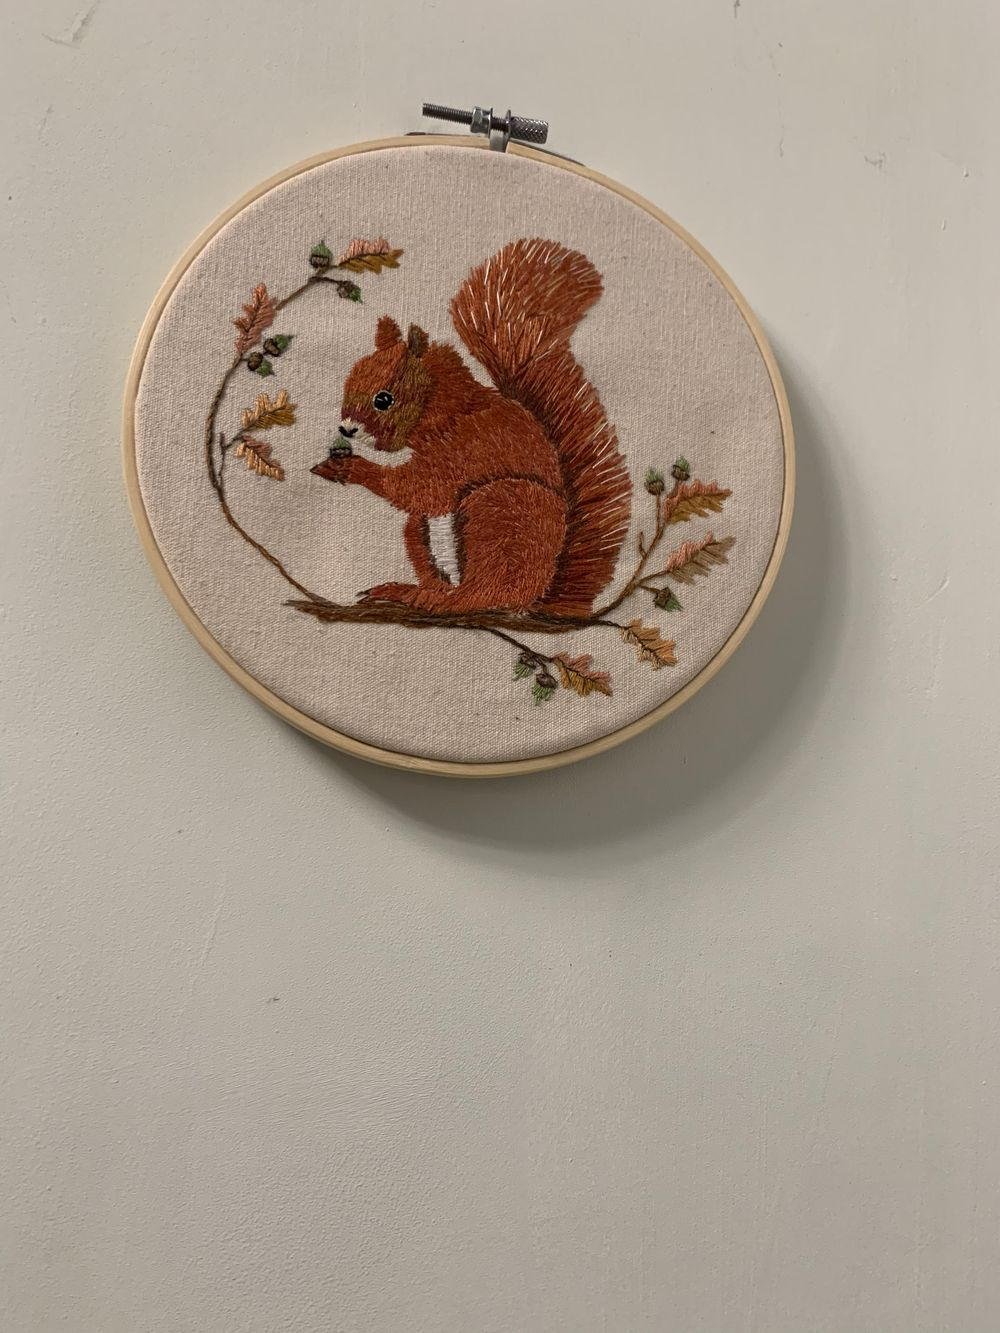 Hedgehog and squirrel - image 1 - student project